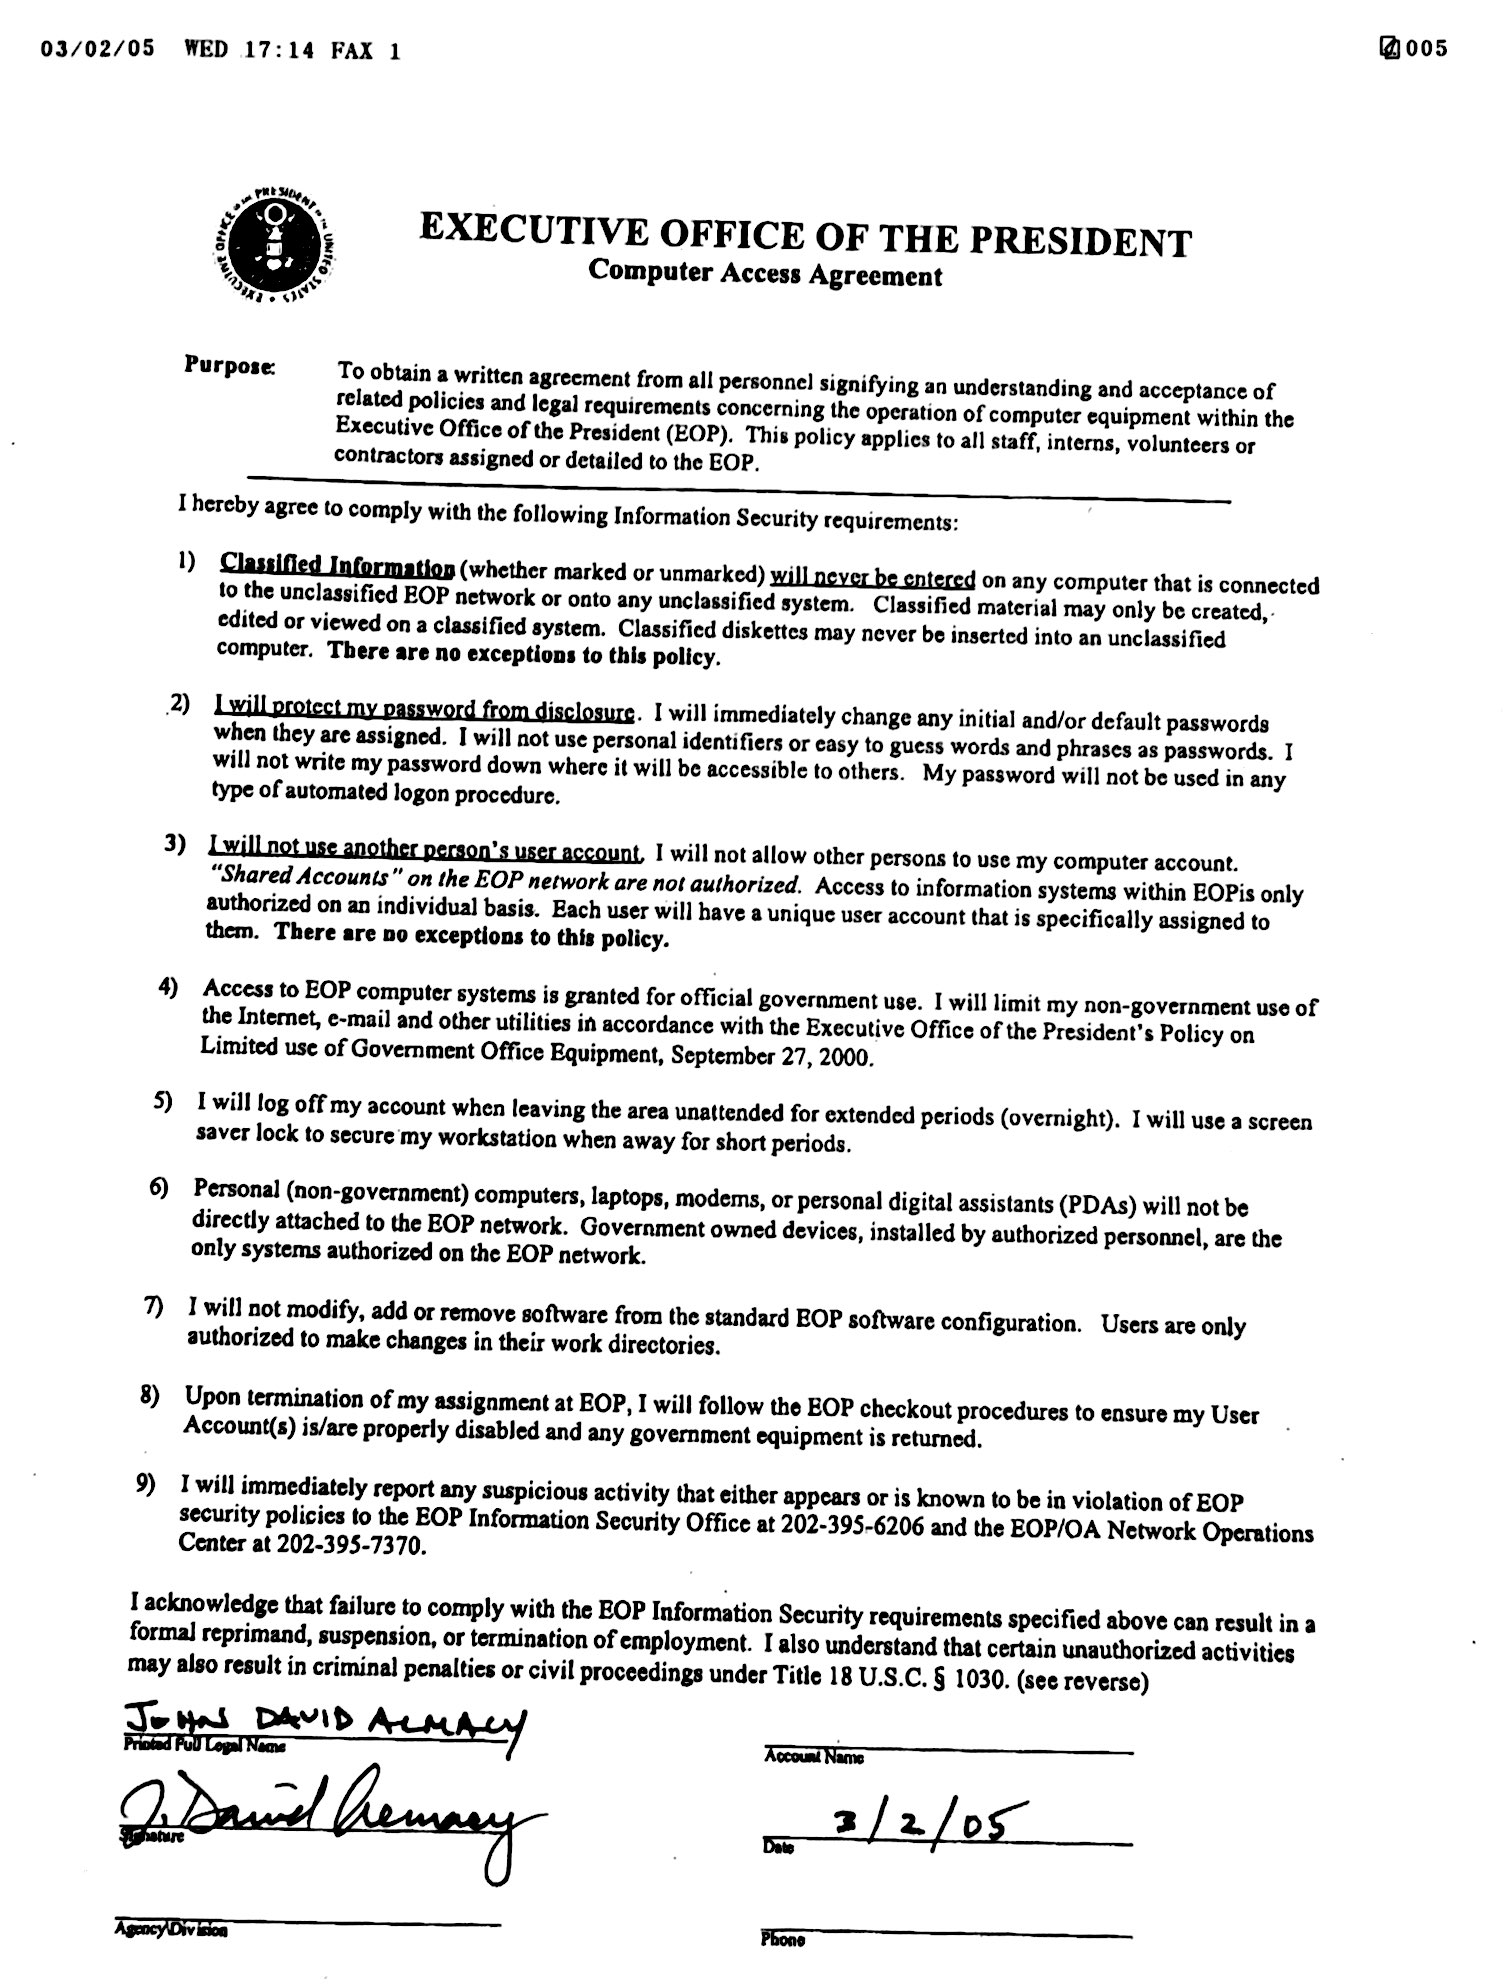 EOP Computer Access Agreement March 2005